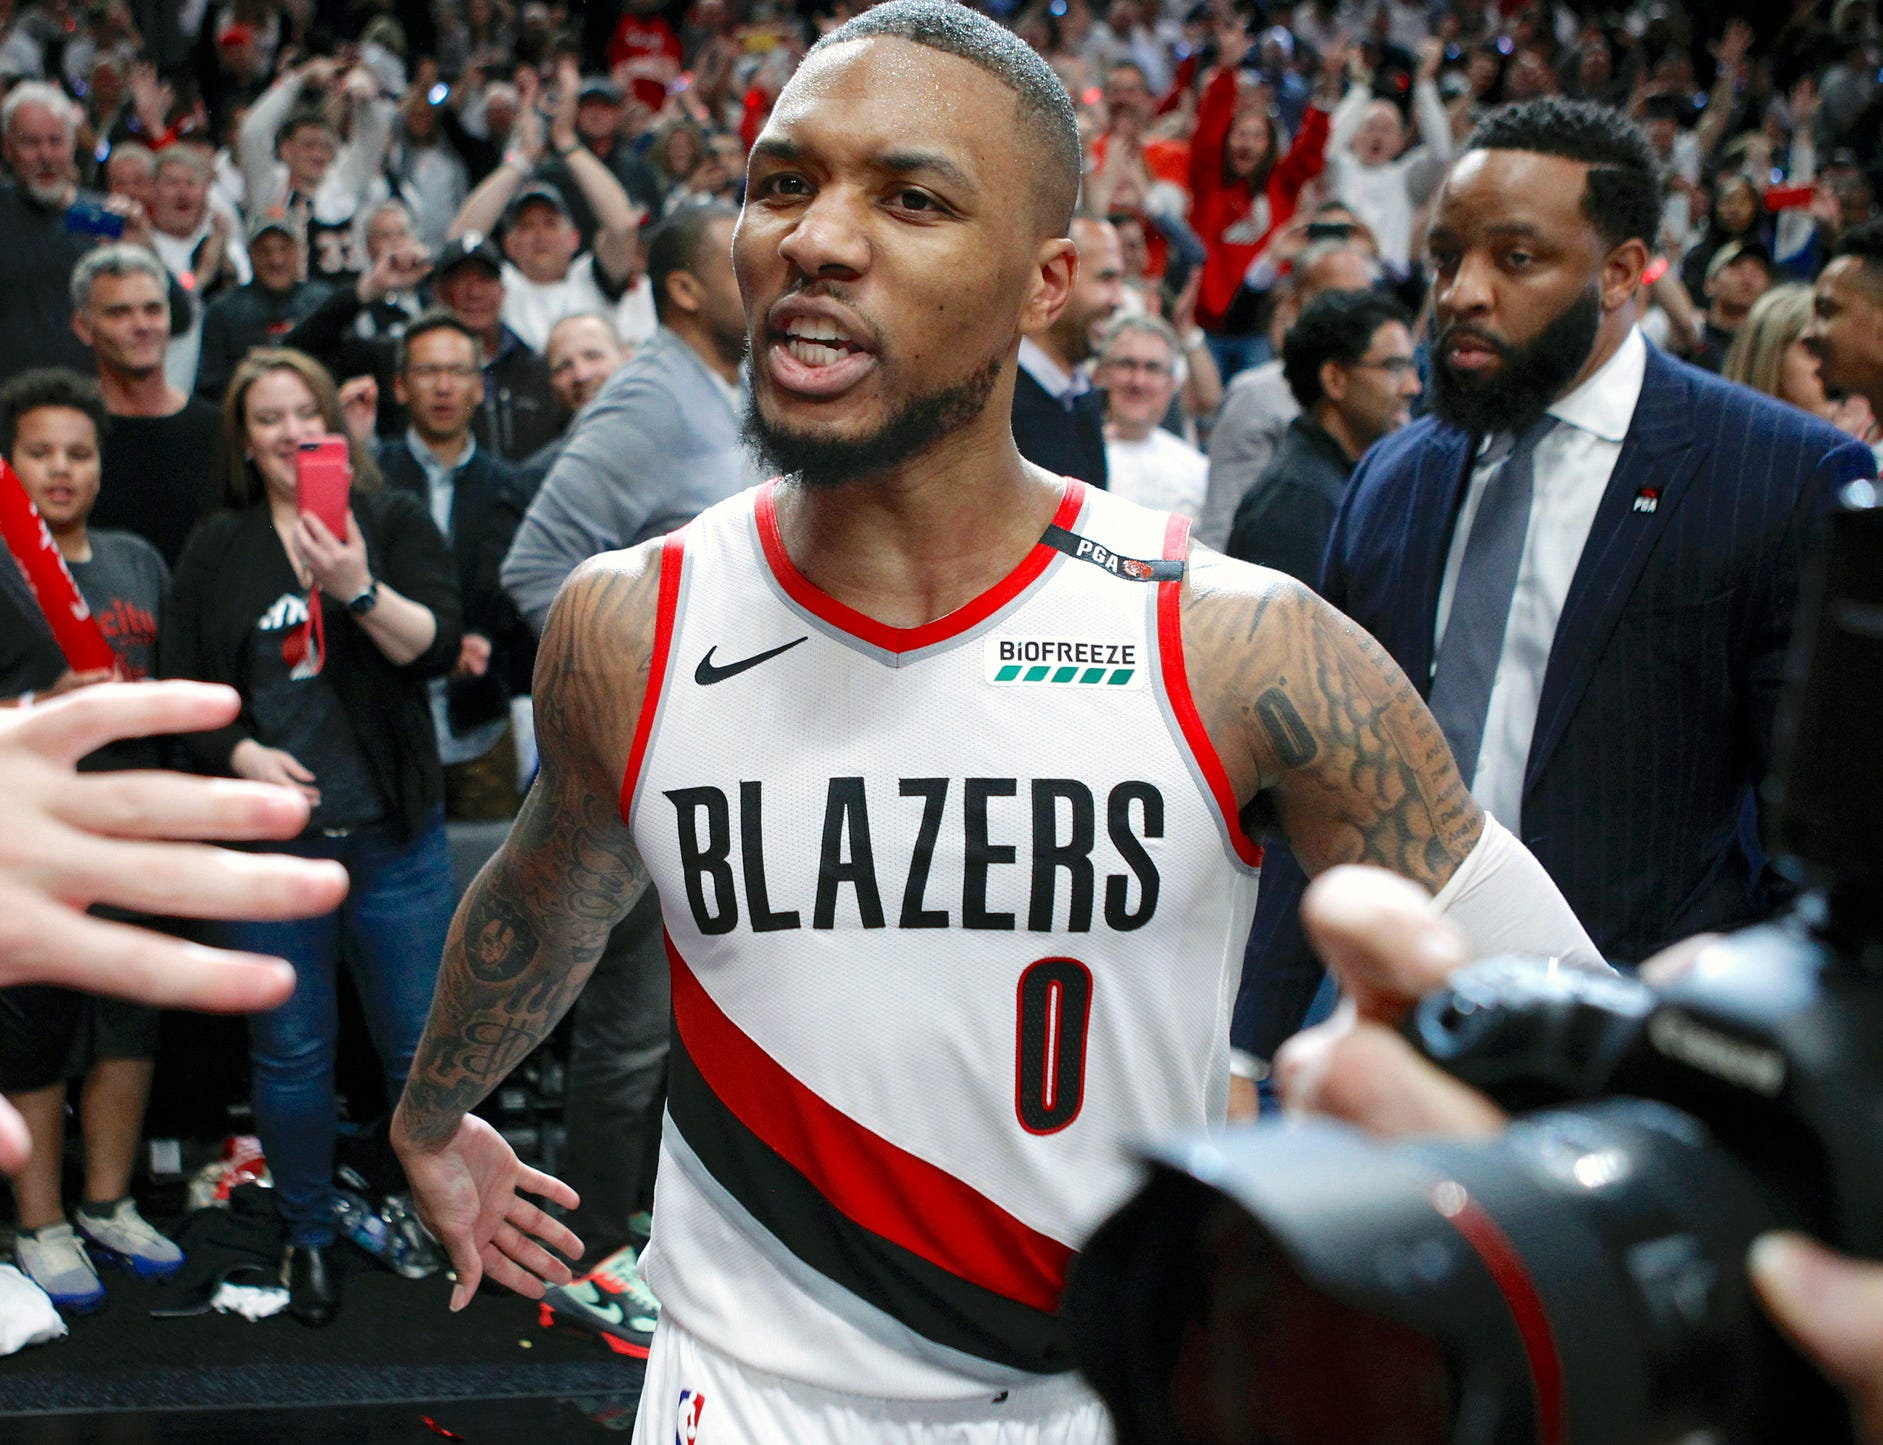 Portland Trail Blazers' Damian Lillard leaves the court after hitting the game-winning 3-pointer to beat the Oklahoma City Thunder.